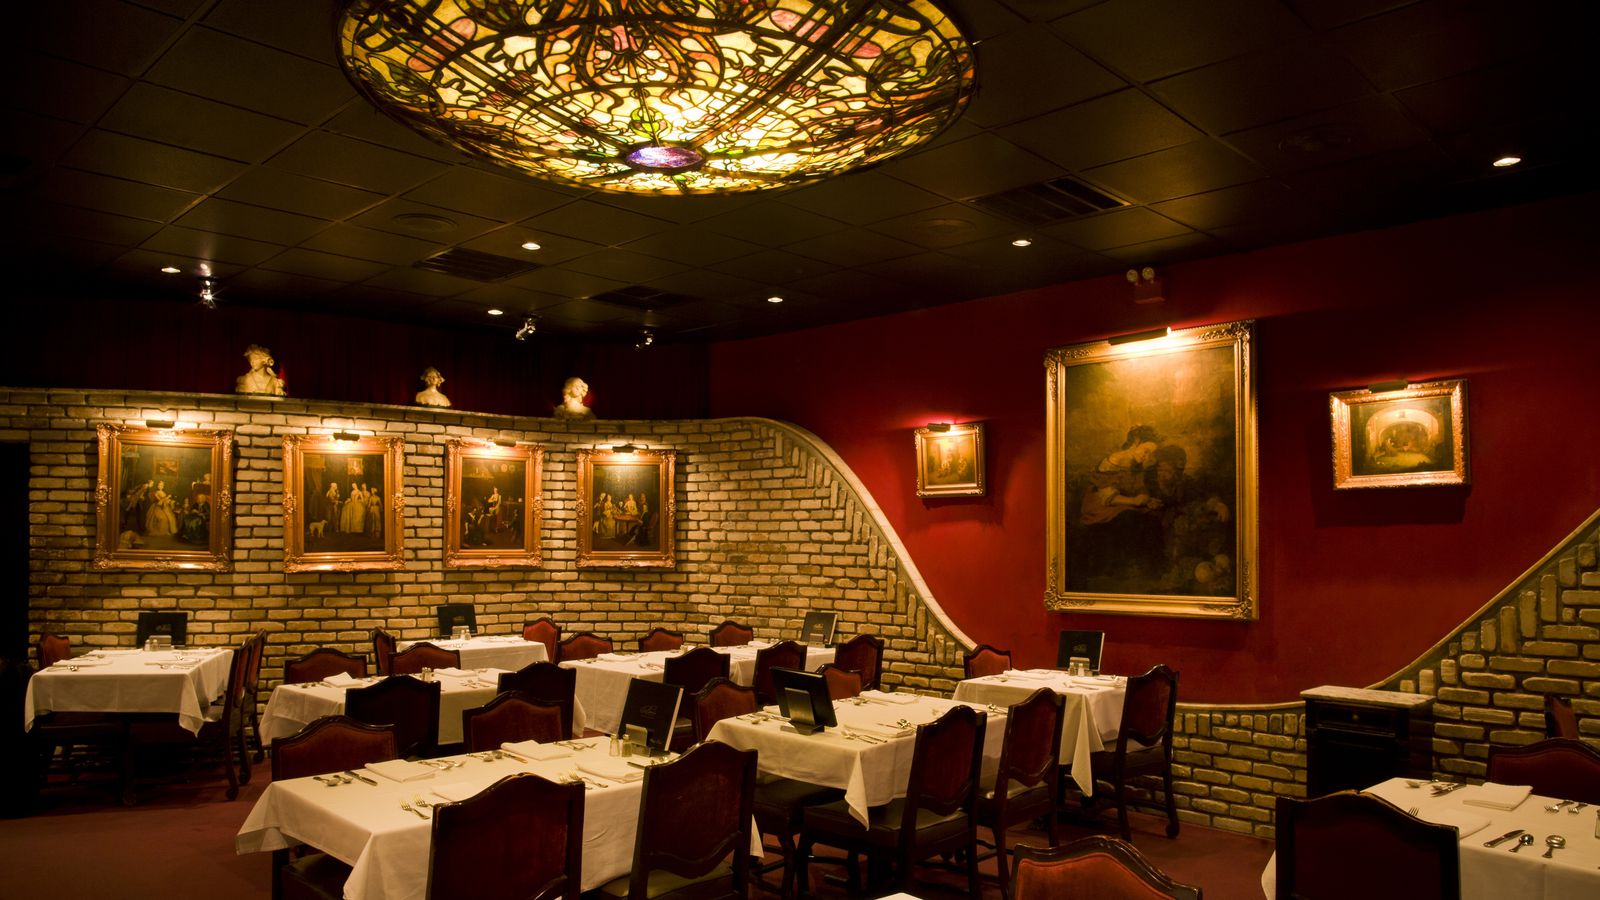 For retro decadence bern s steak house in tampa still for S kitchen steak house